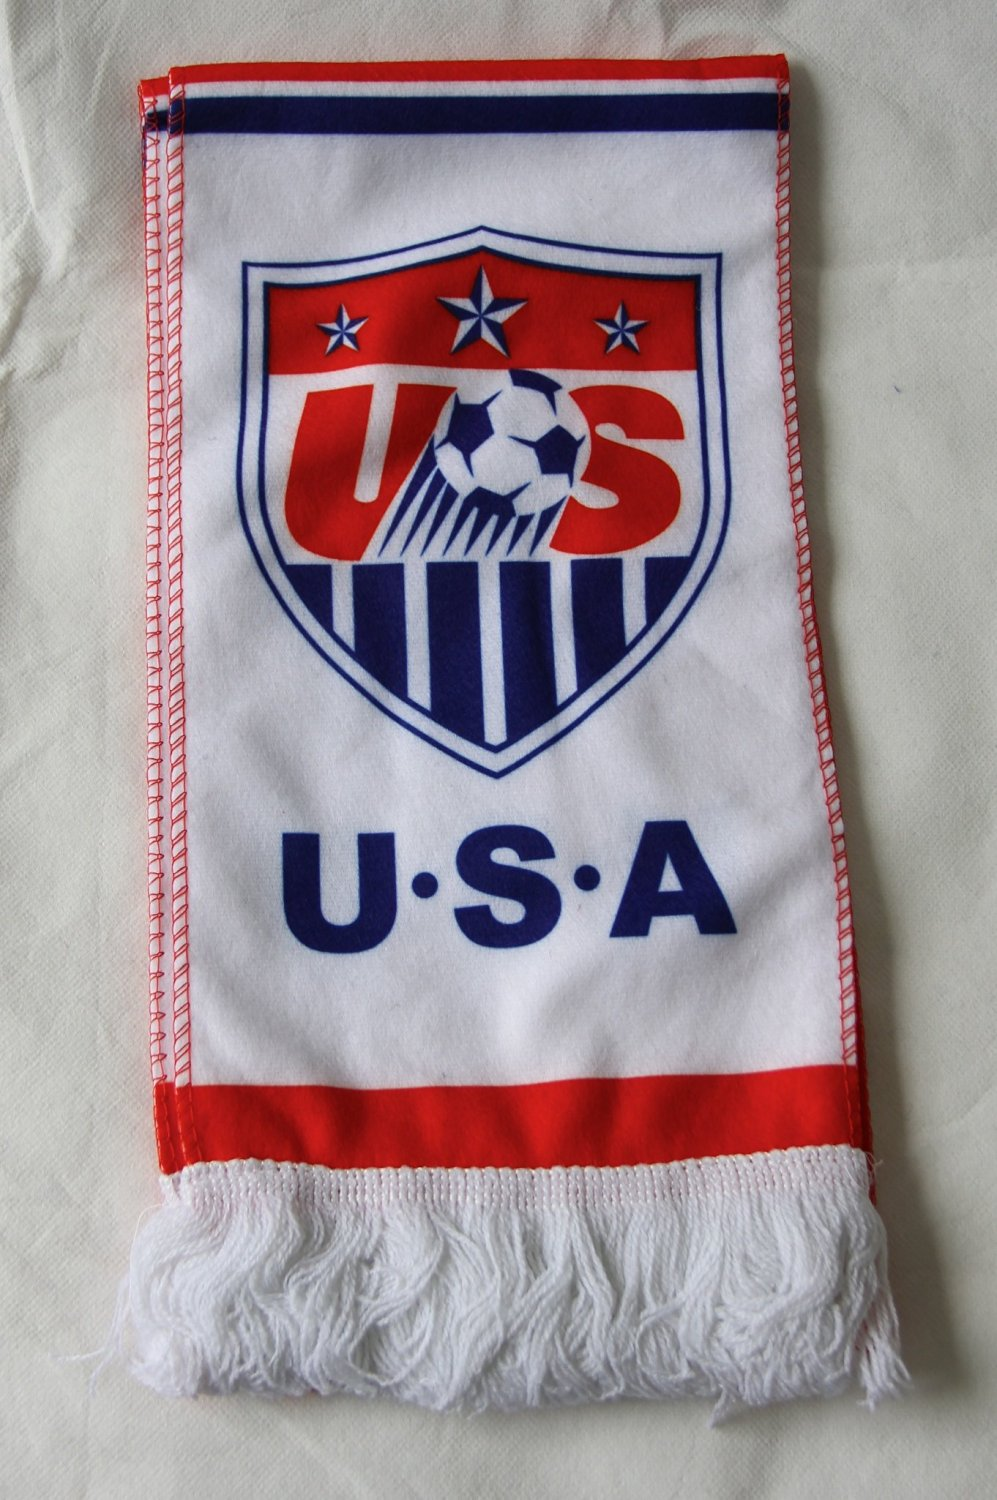 USA Fifa World CUP Soccer Football Logo Scarf Scarves